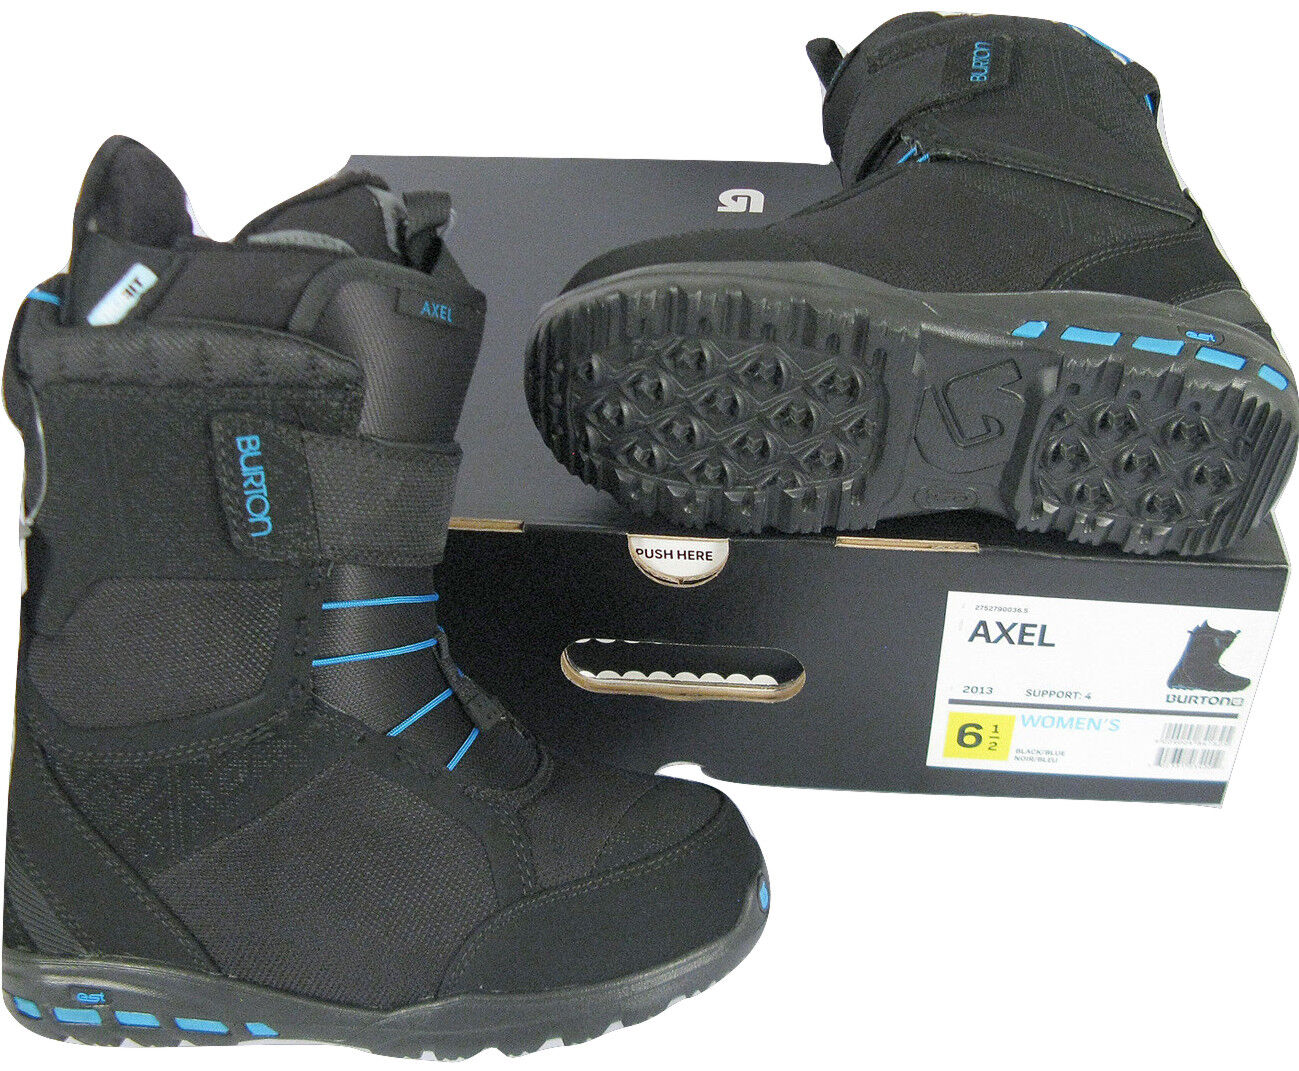 new 250 axel womens snowboard boots black